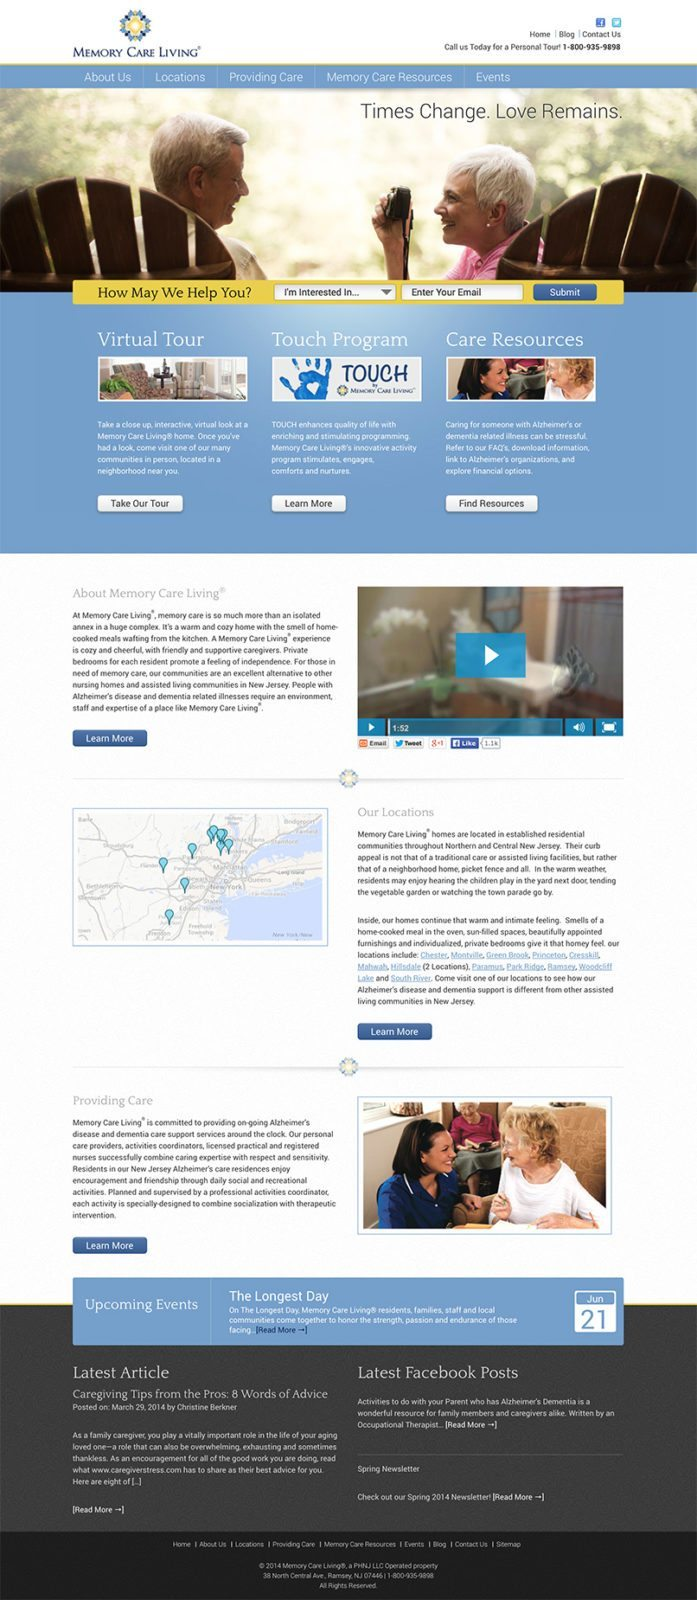 Epic Notion Client | Memory Care Living Laptop Website Development and Design